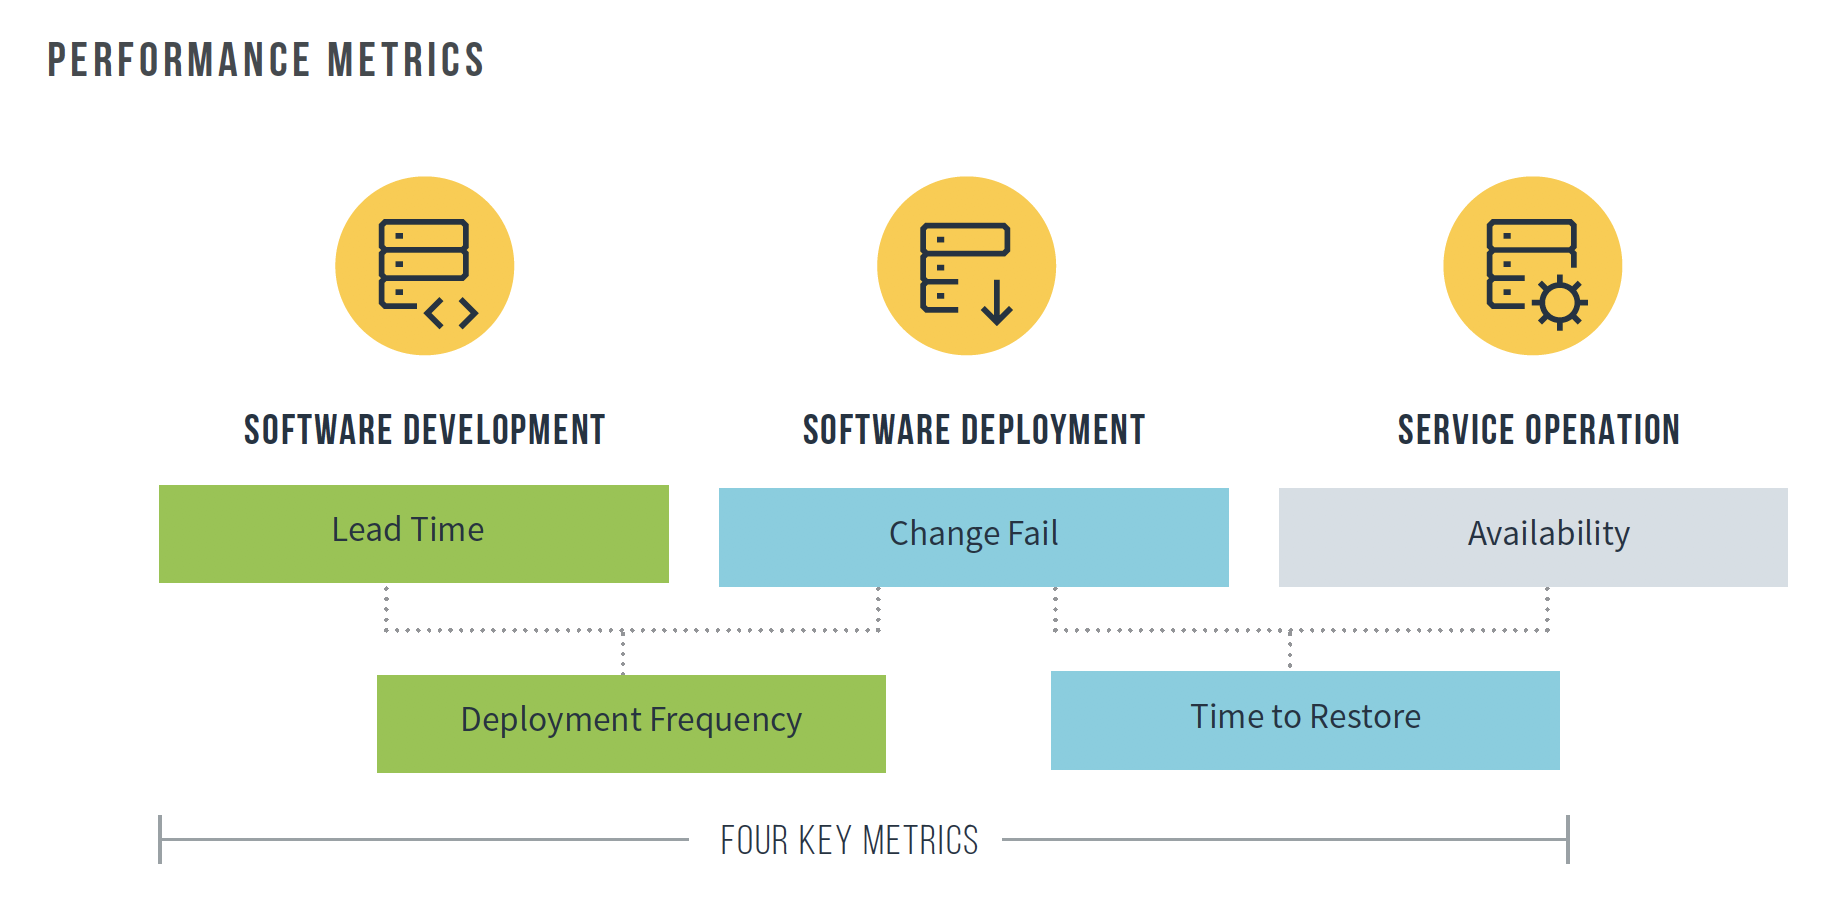 Accelerate state of DevOps 2019 metrics pg16